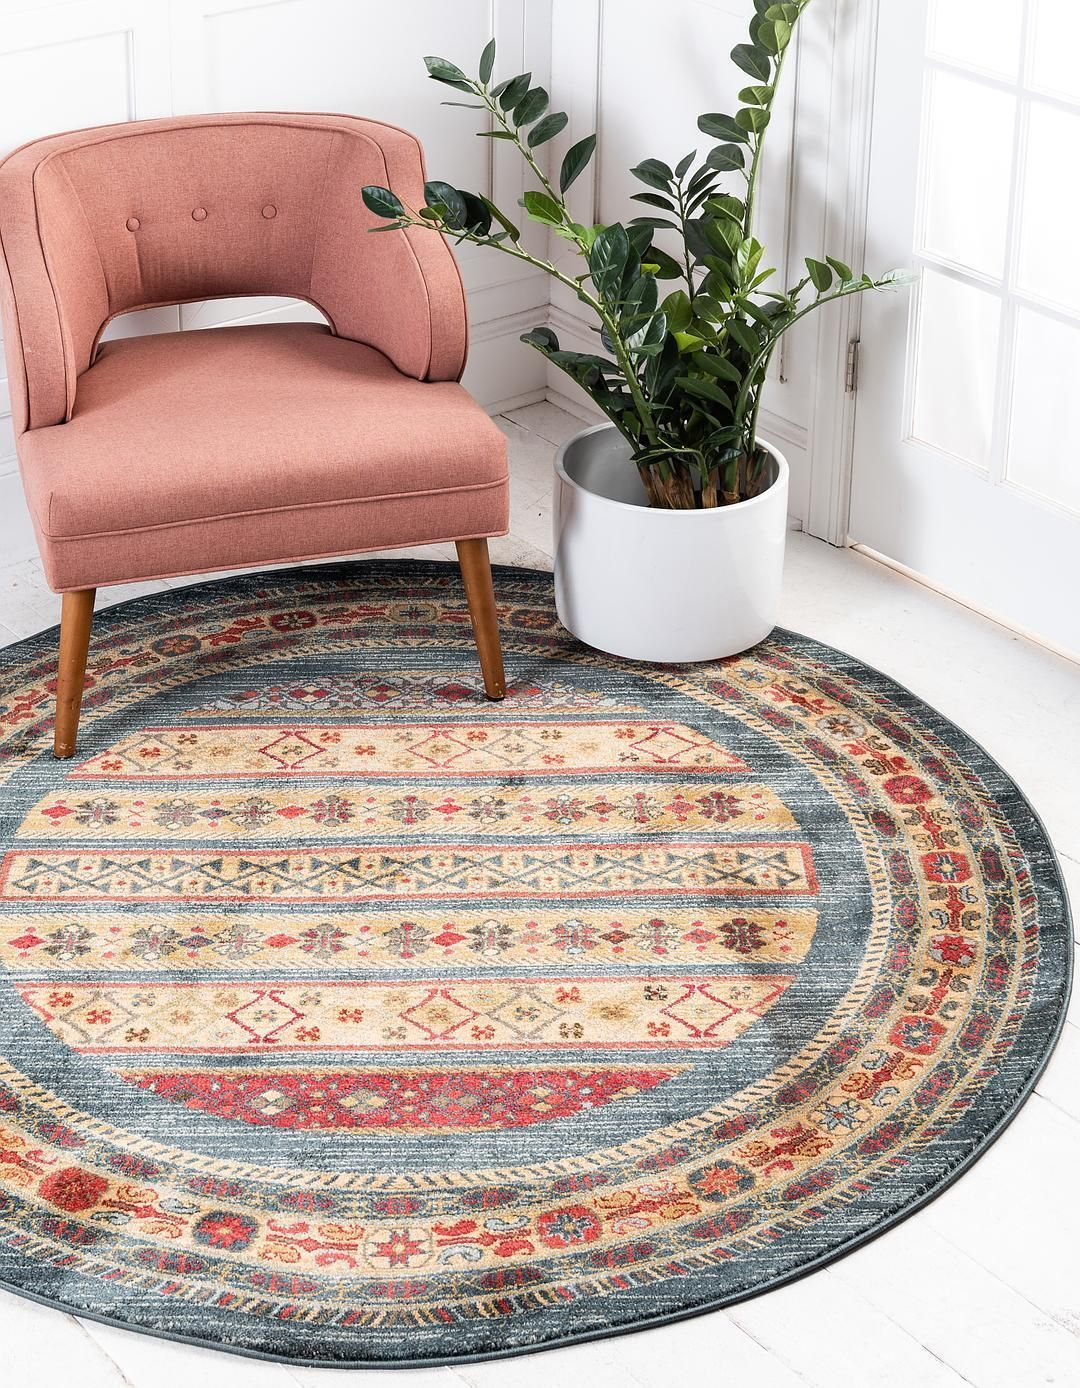 Bohemian Braided Decor Indian Jute Round Rug Home Decor Rug Rag